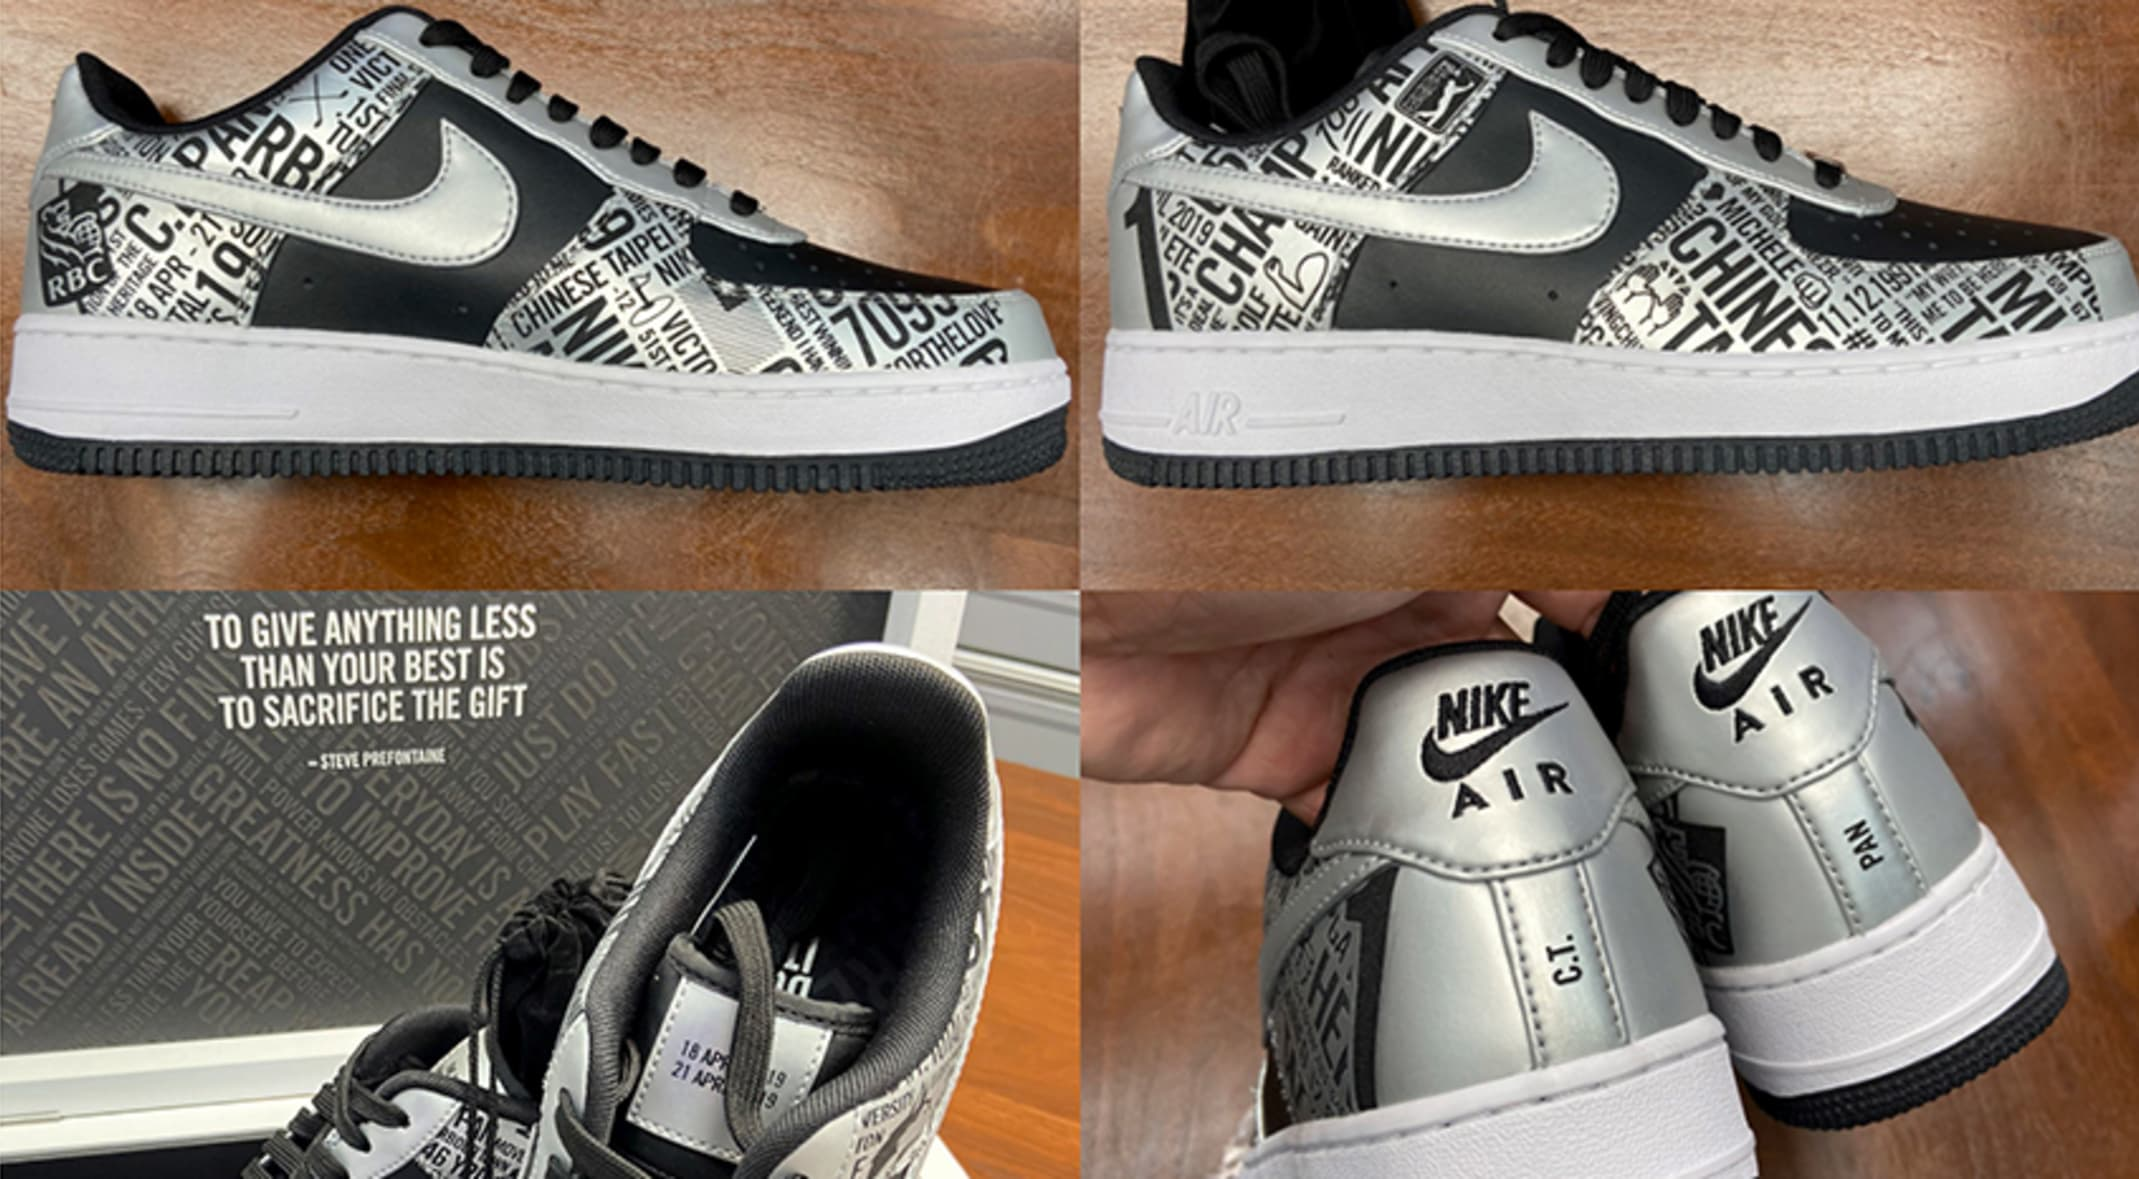 Pan's custom Nike Air Force 1 'First Win Edition' shoes